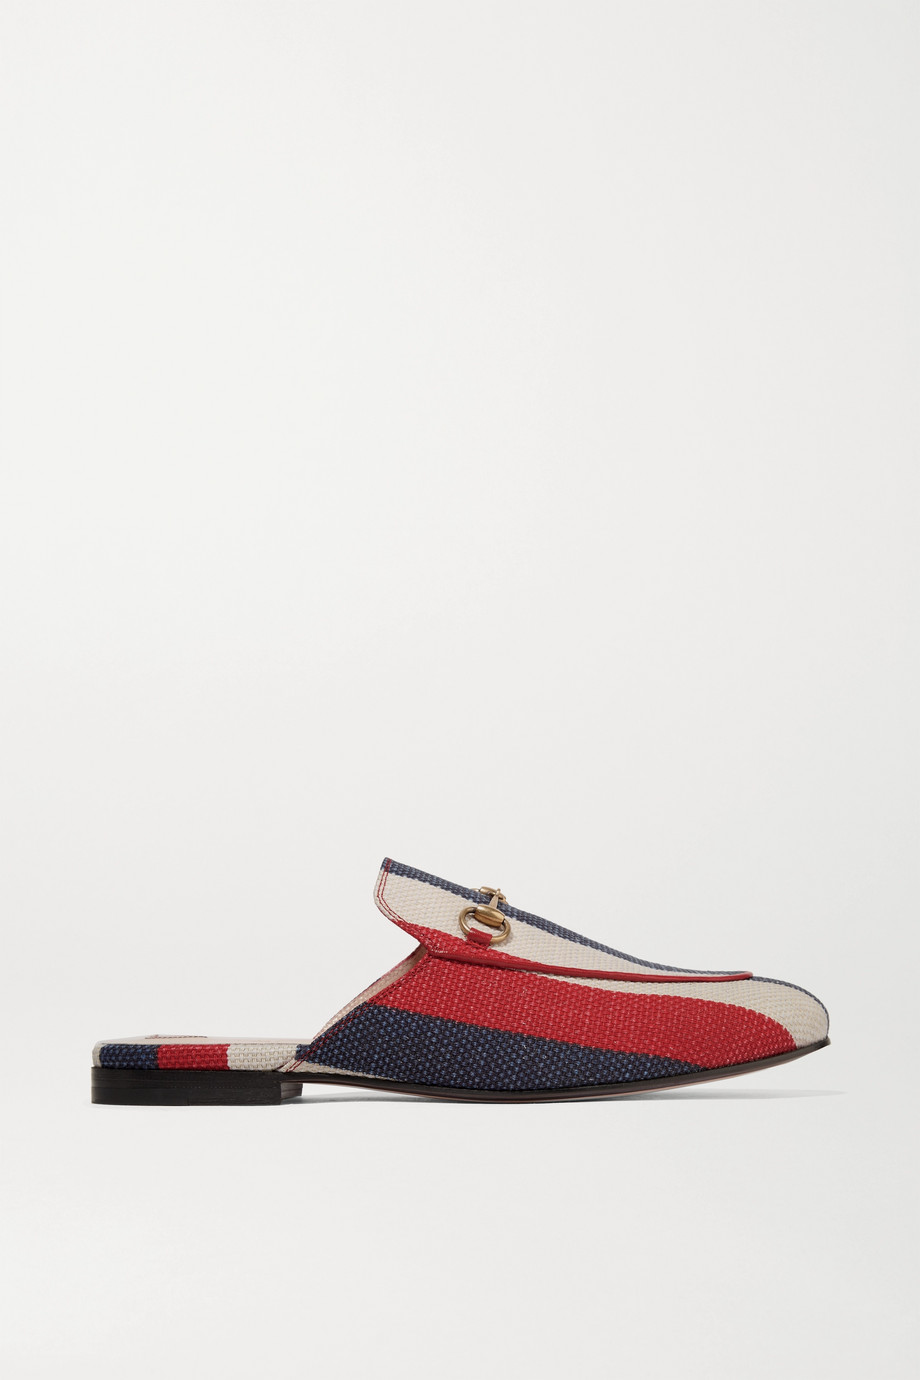 Gucci Princetown horsebit-detailed striped canvas slippers